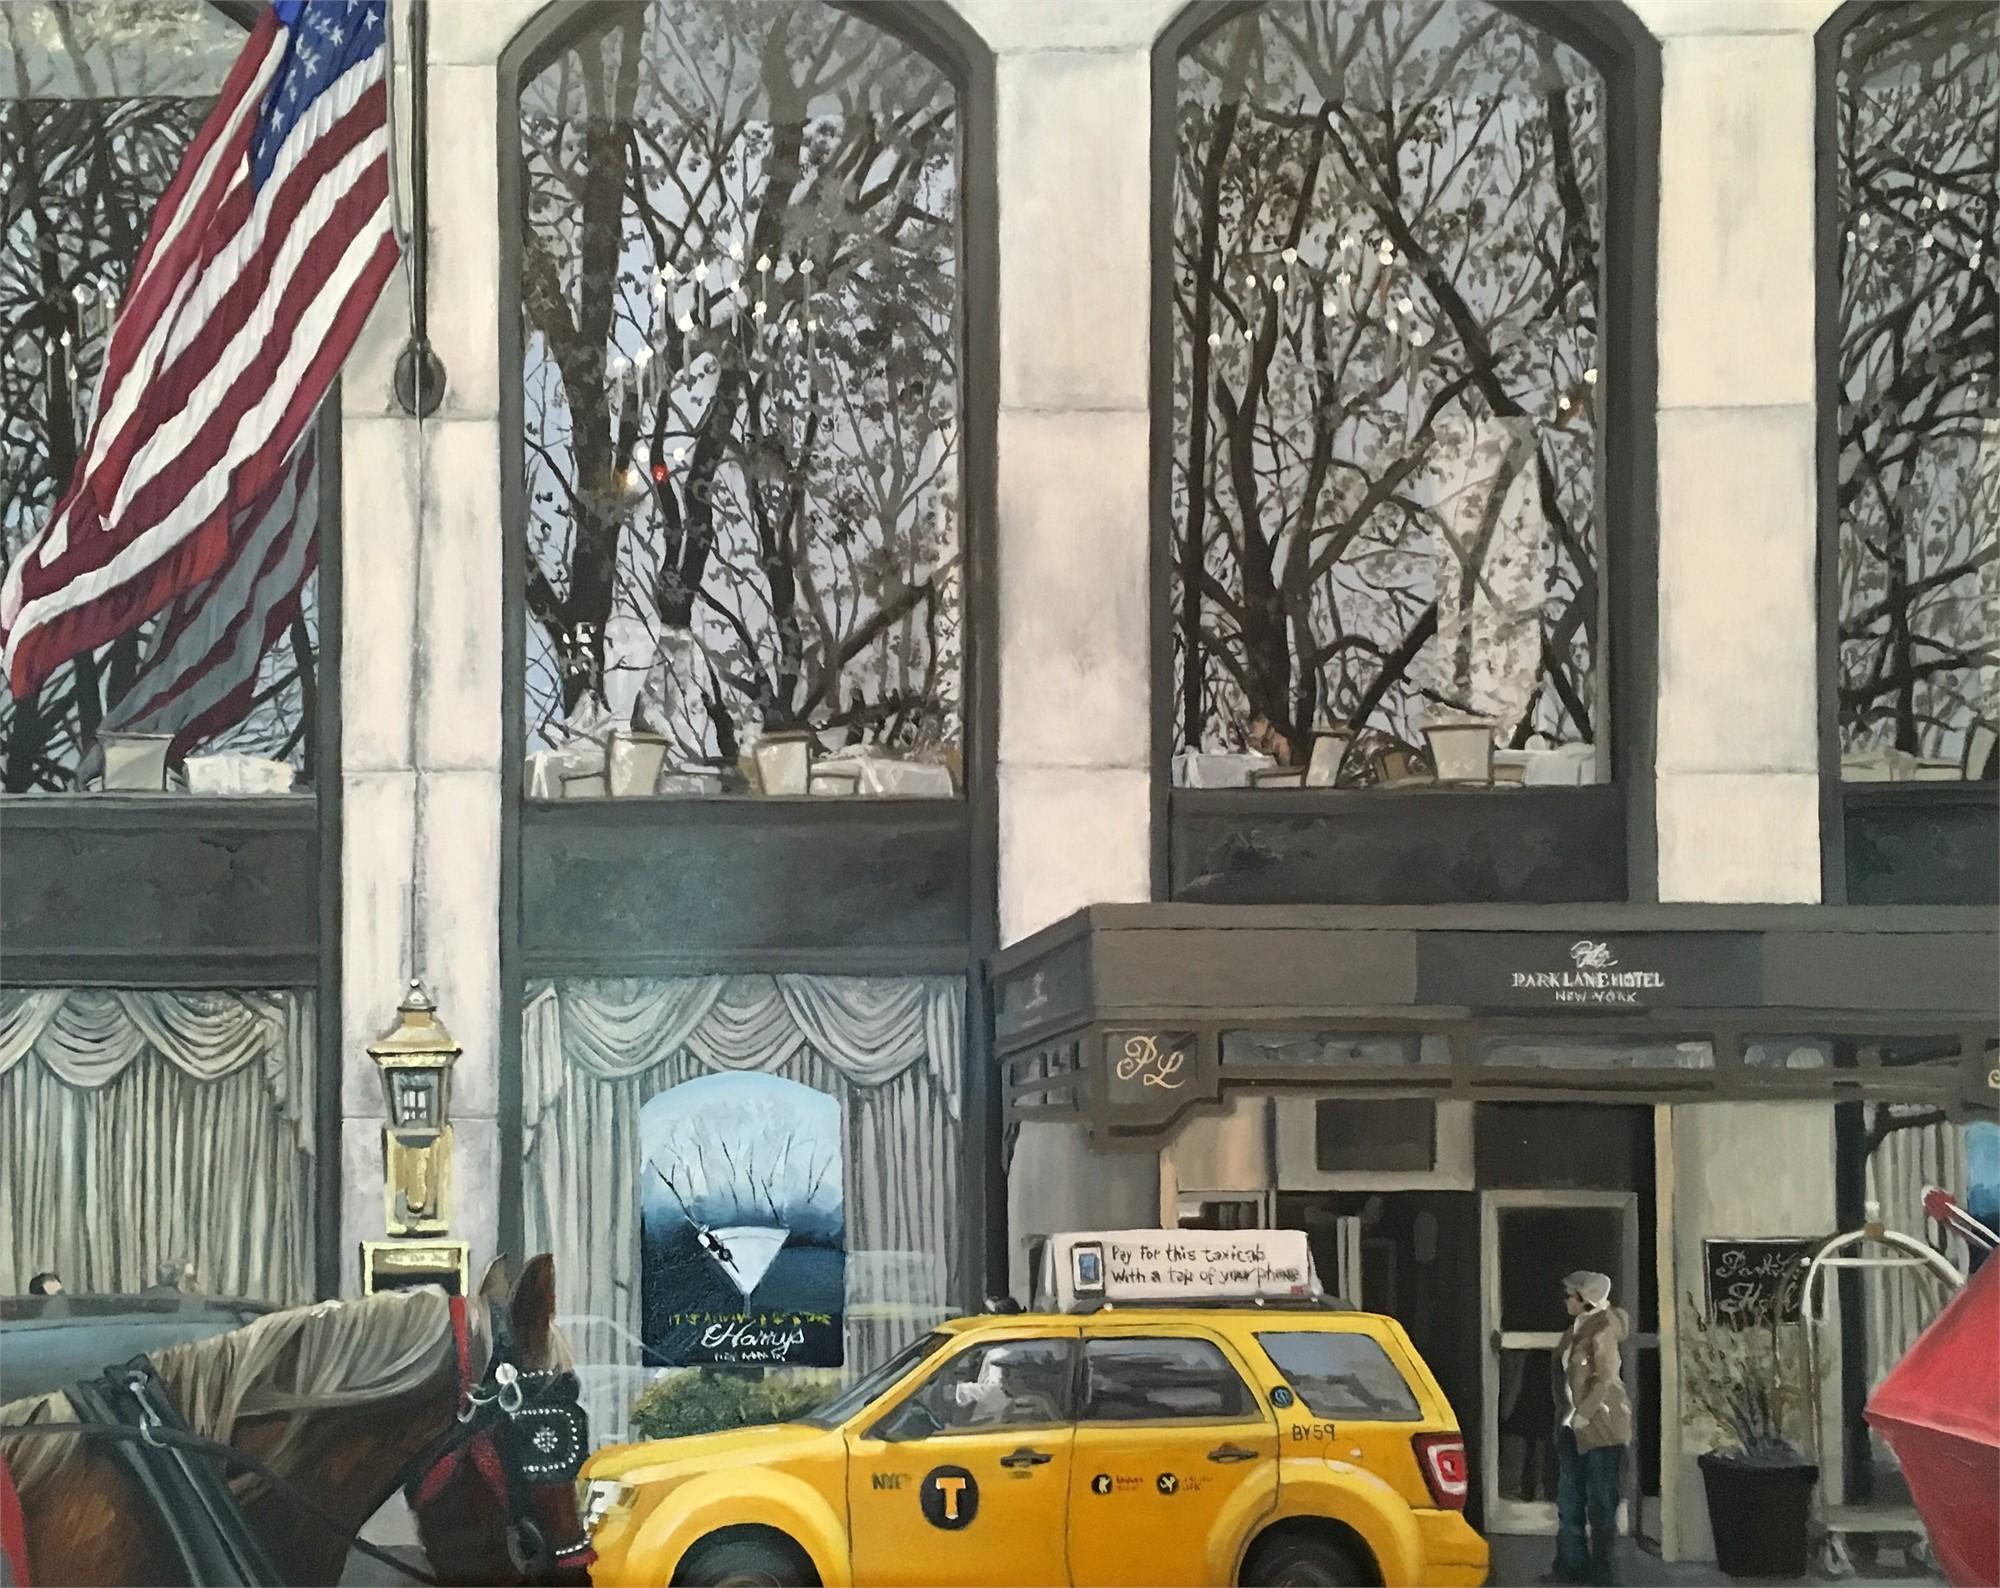 The Parklane Hotel, NYC by Sharon Pomales